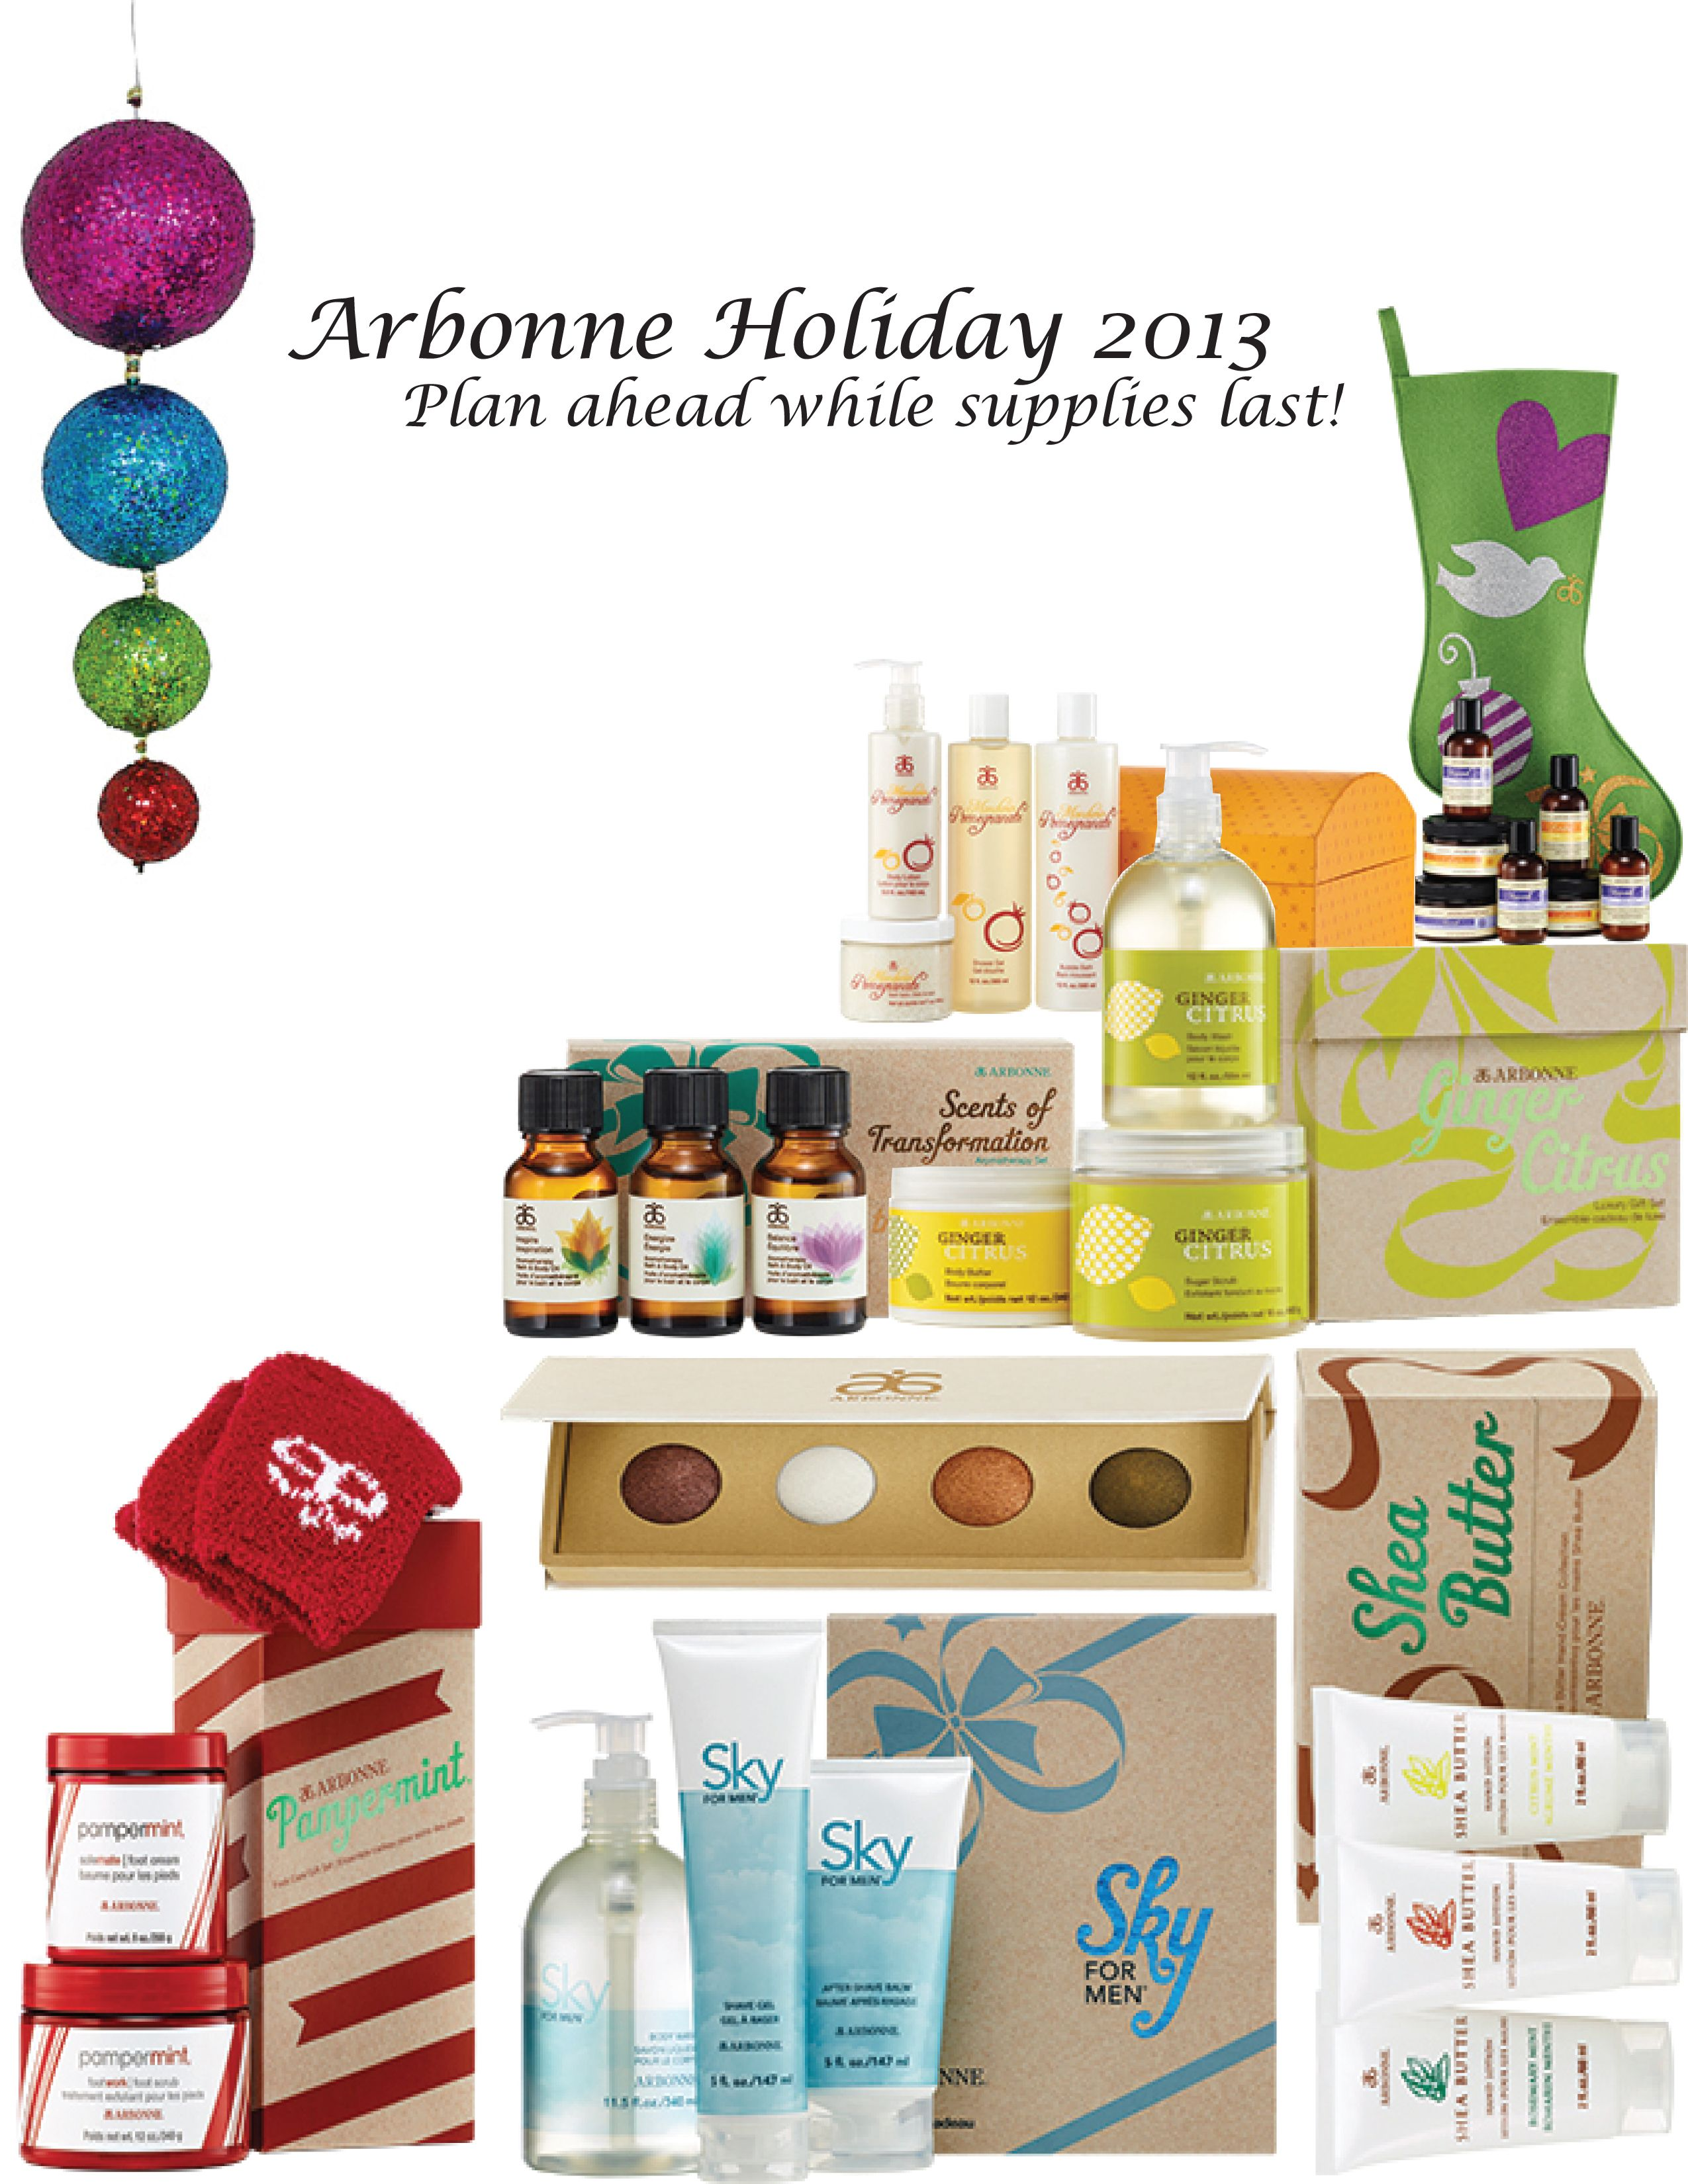 Holiday Products are in! Start enjoying them before the holidays and plan ahead with great gifts! These make for great teacher gifts, client and employee gifts too! Contact me at maryanne.beal@gmail.com for more info and Shop Arbonne online at maryannebeal.myarbonne.com